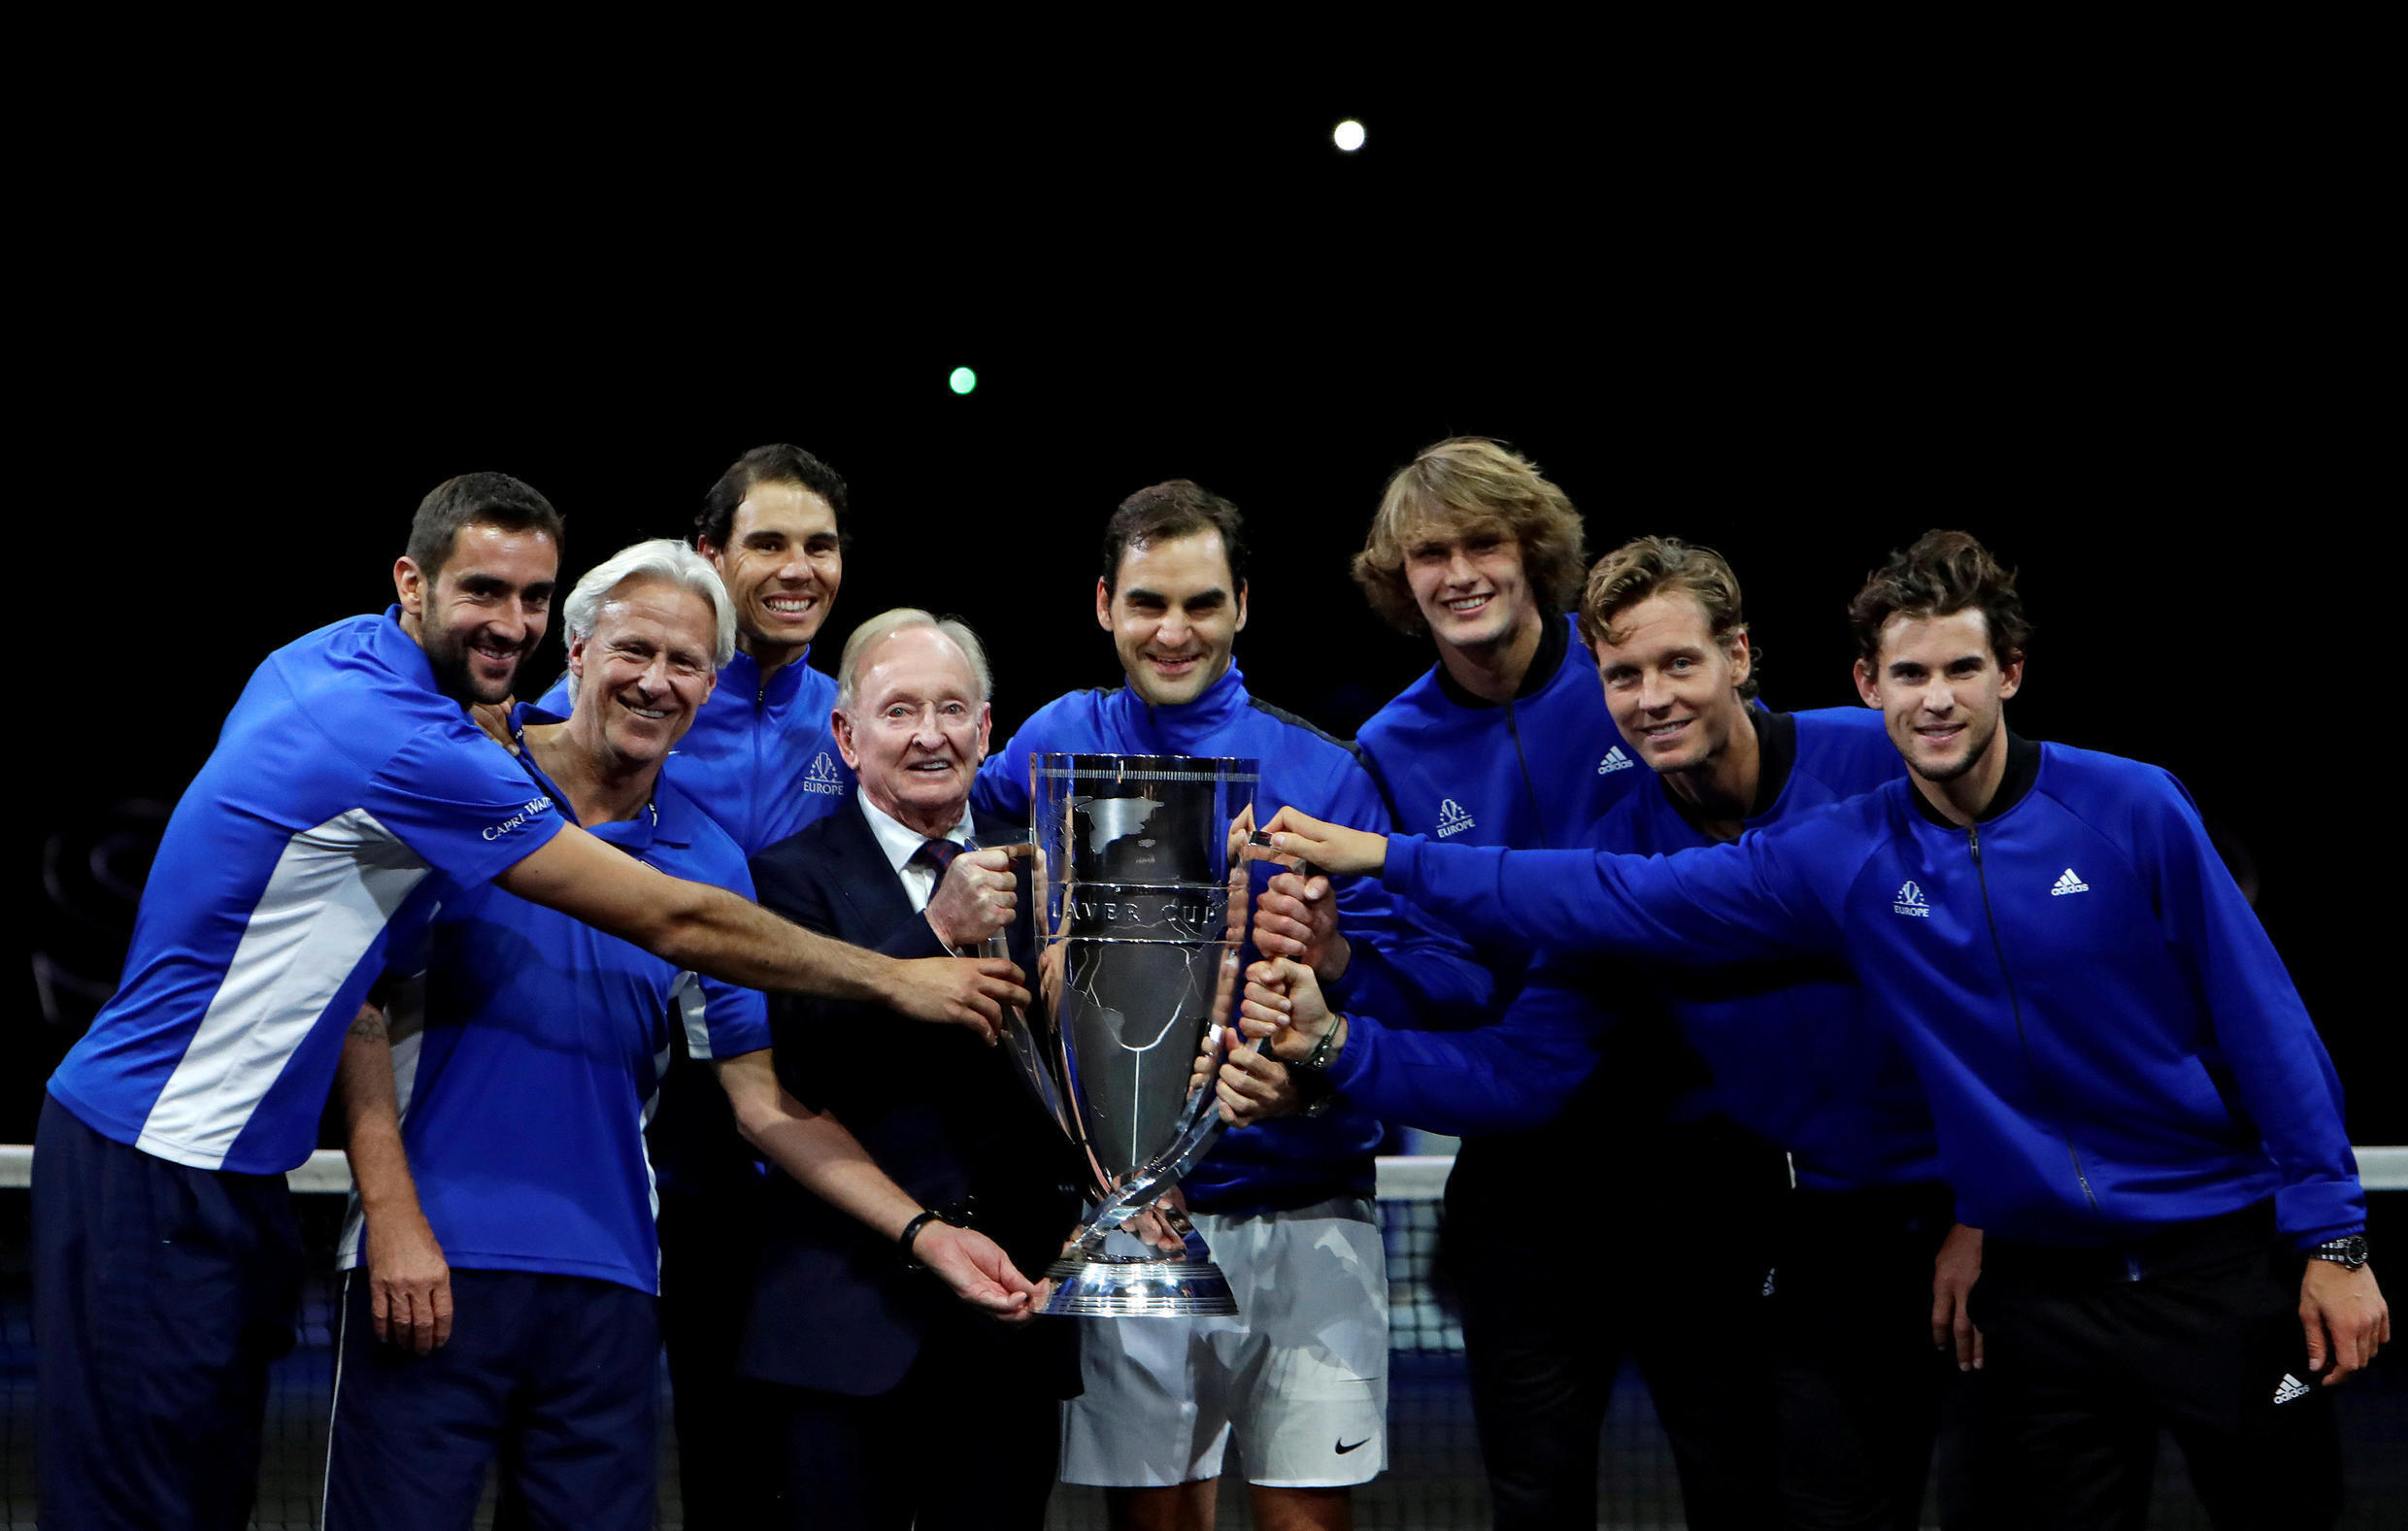 Members of Team Europe celebrate with Rod Laver after winning the competition named in his honour.